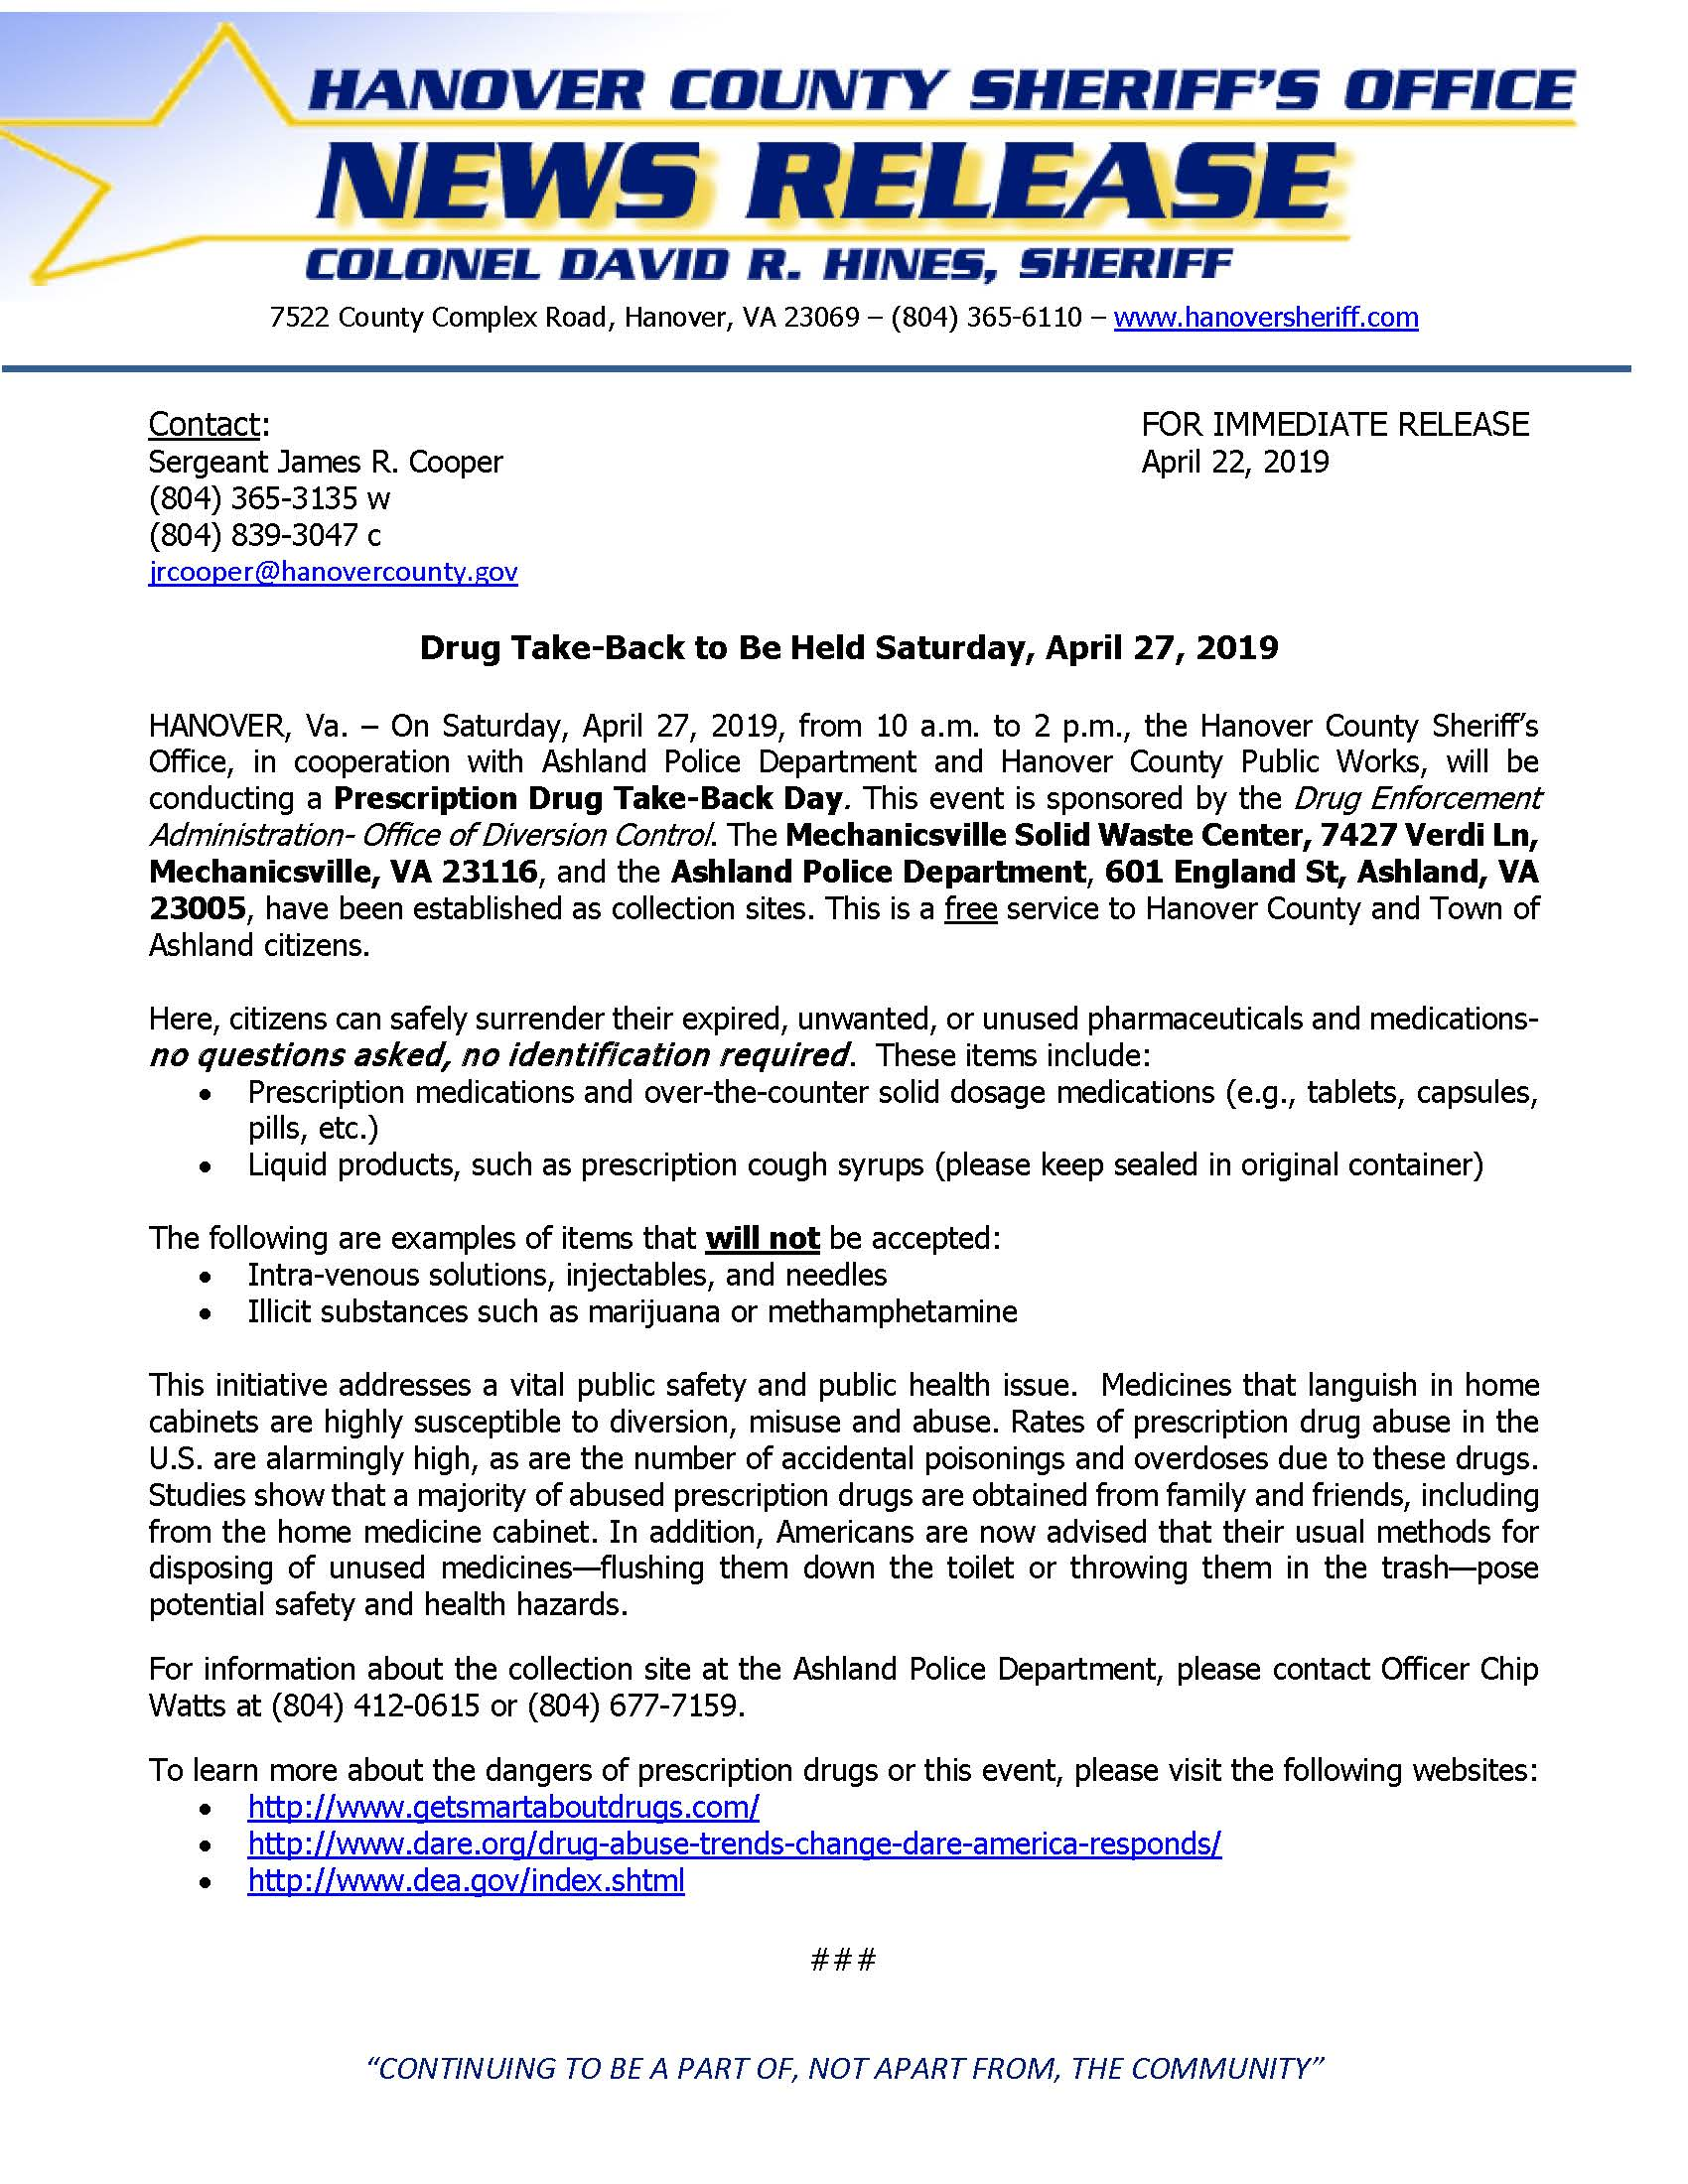 HCSO - Drug Take Back to be held on 4-27-19